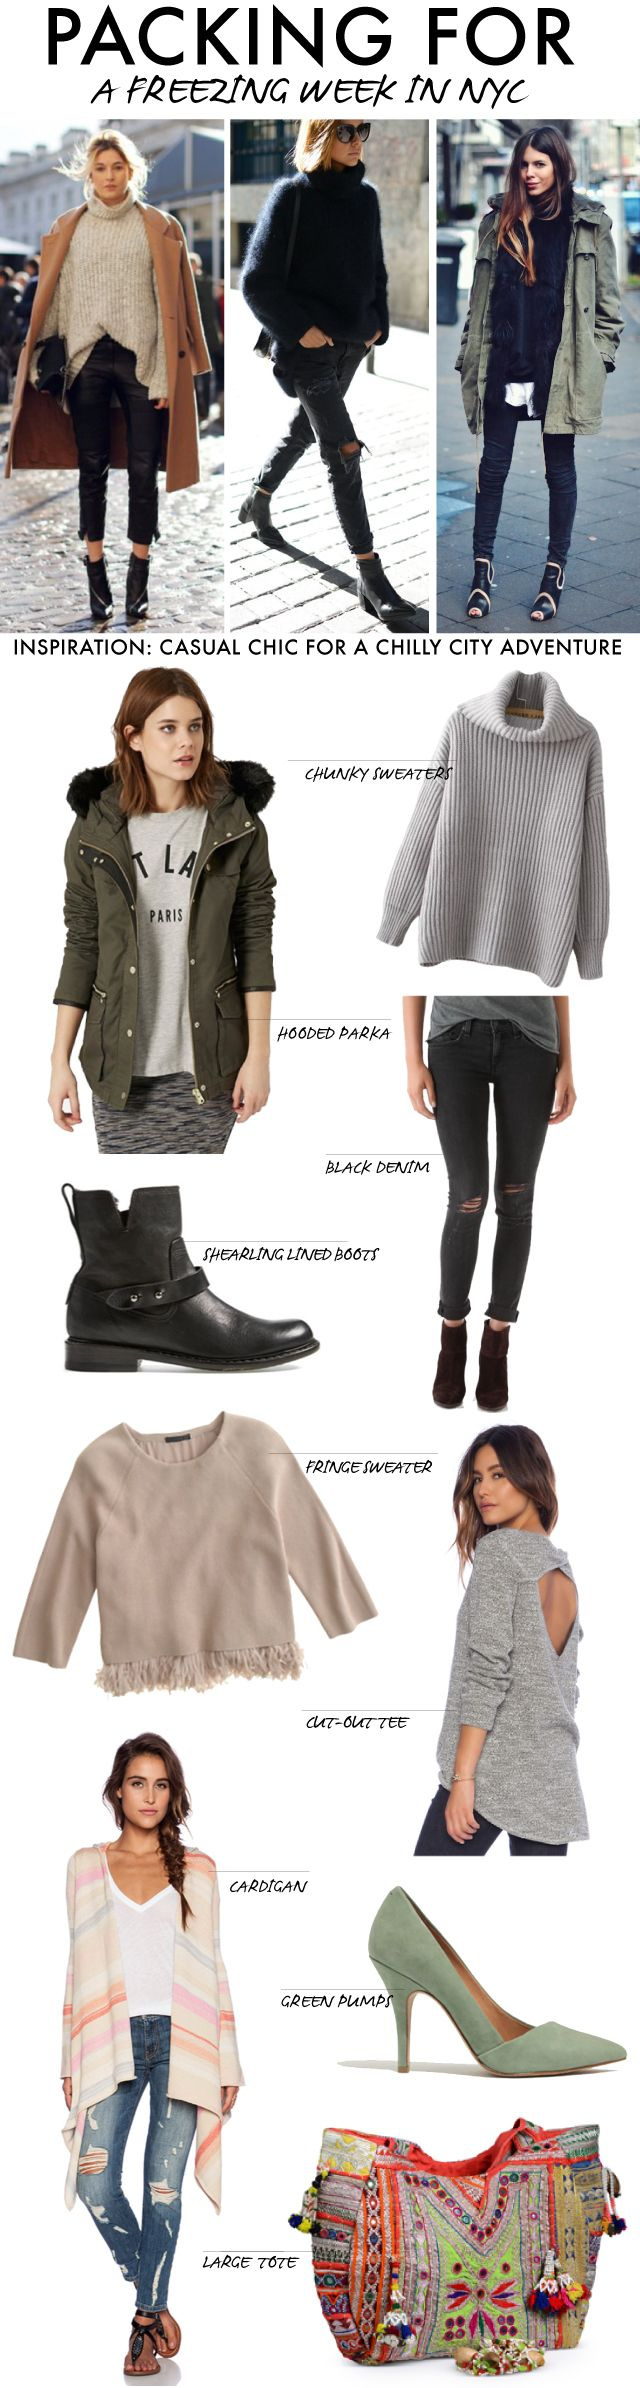 Packing ideas for a freezing NYC weekend.